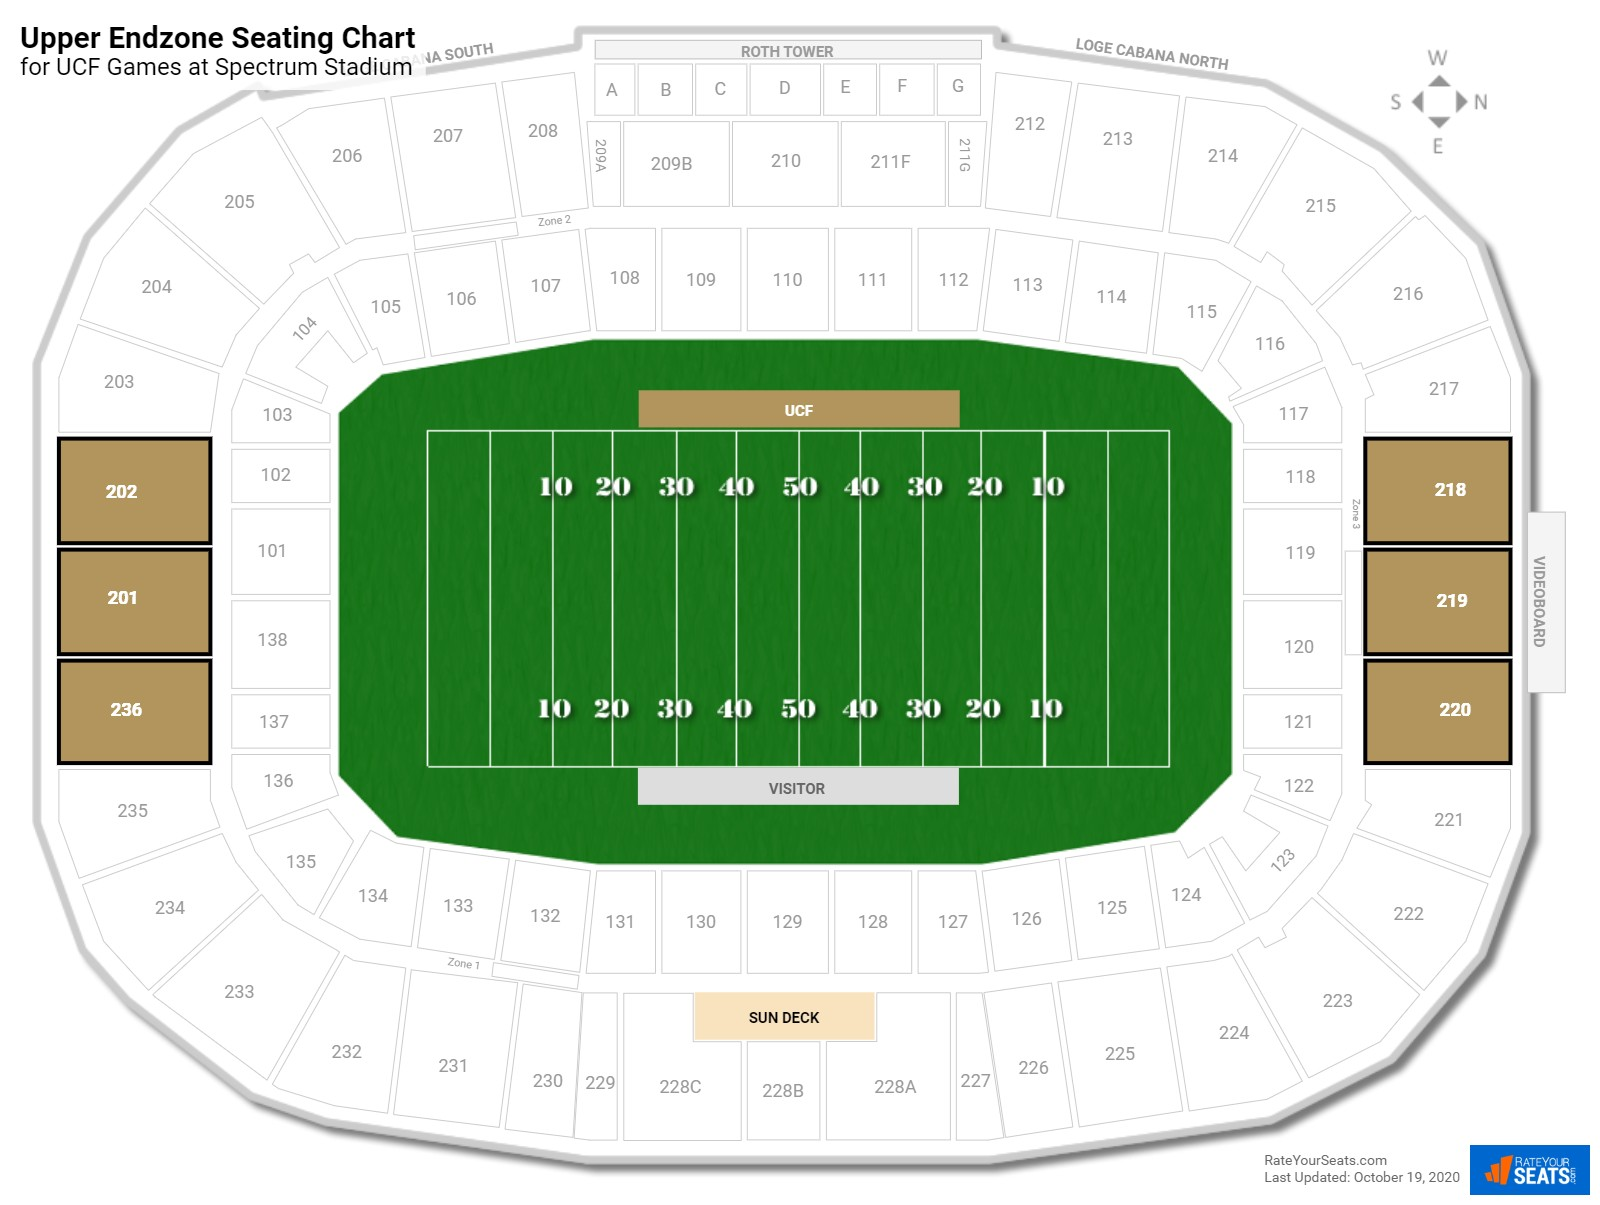 Bright house networks stadium ucf knights tickets all for Right house